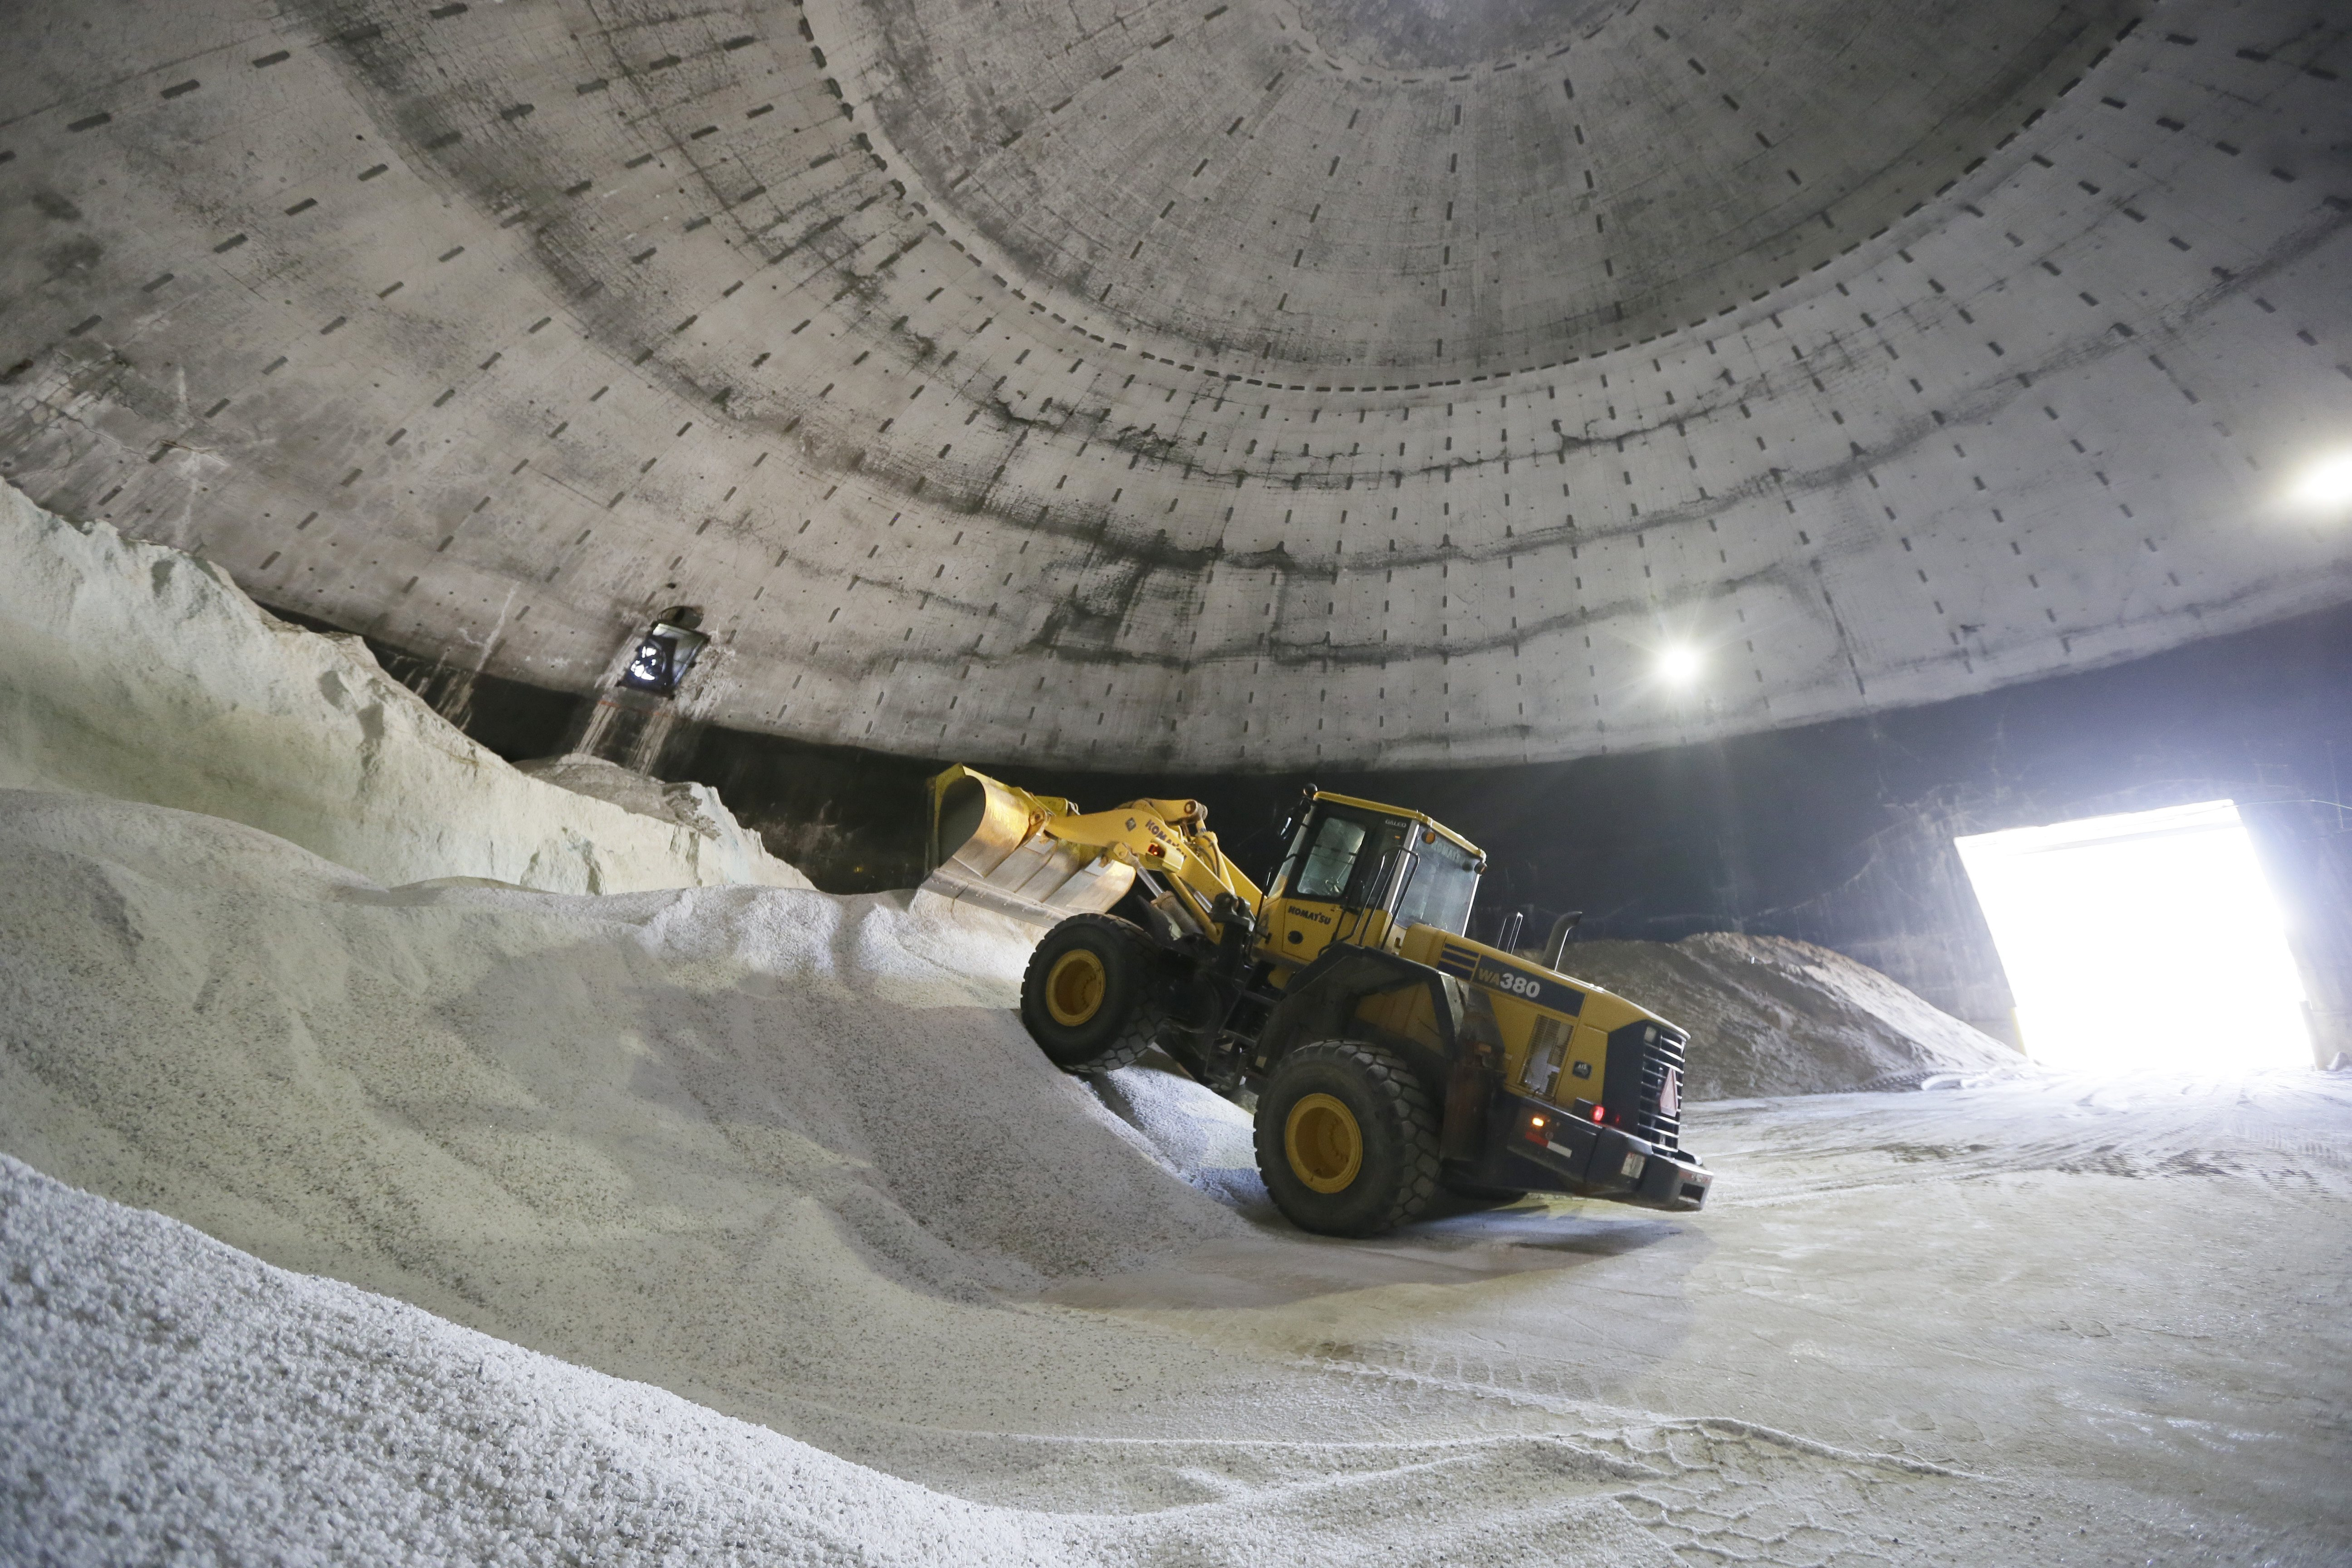 Salt is unloaded at the Scio Township, Mich. maintenance yard on Sept. 16, 2014. Some Midwest county road officials are facing price increases that are three times what they paid last year.